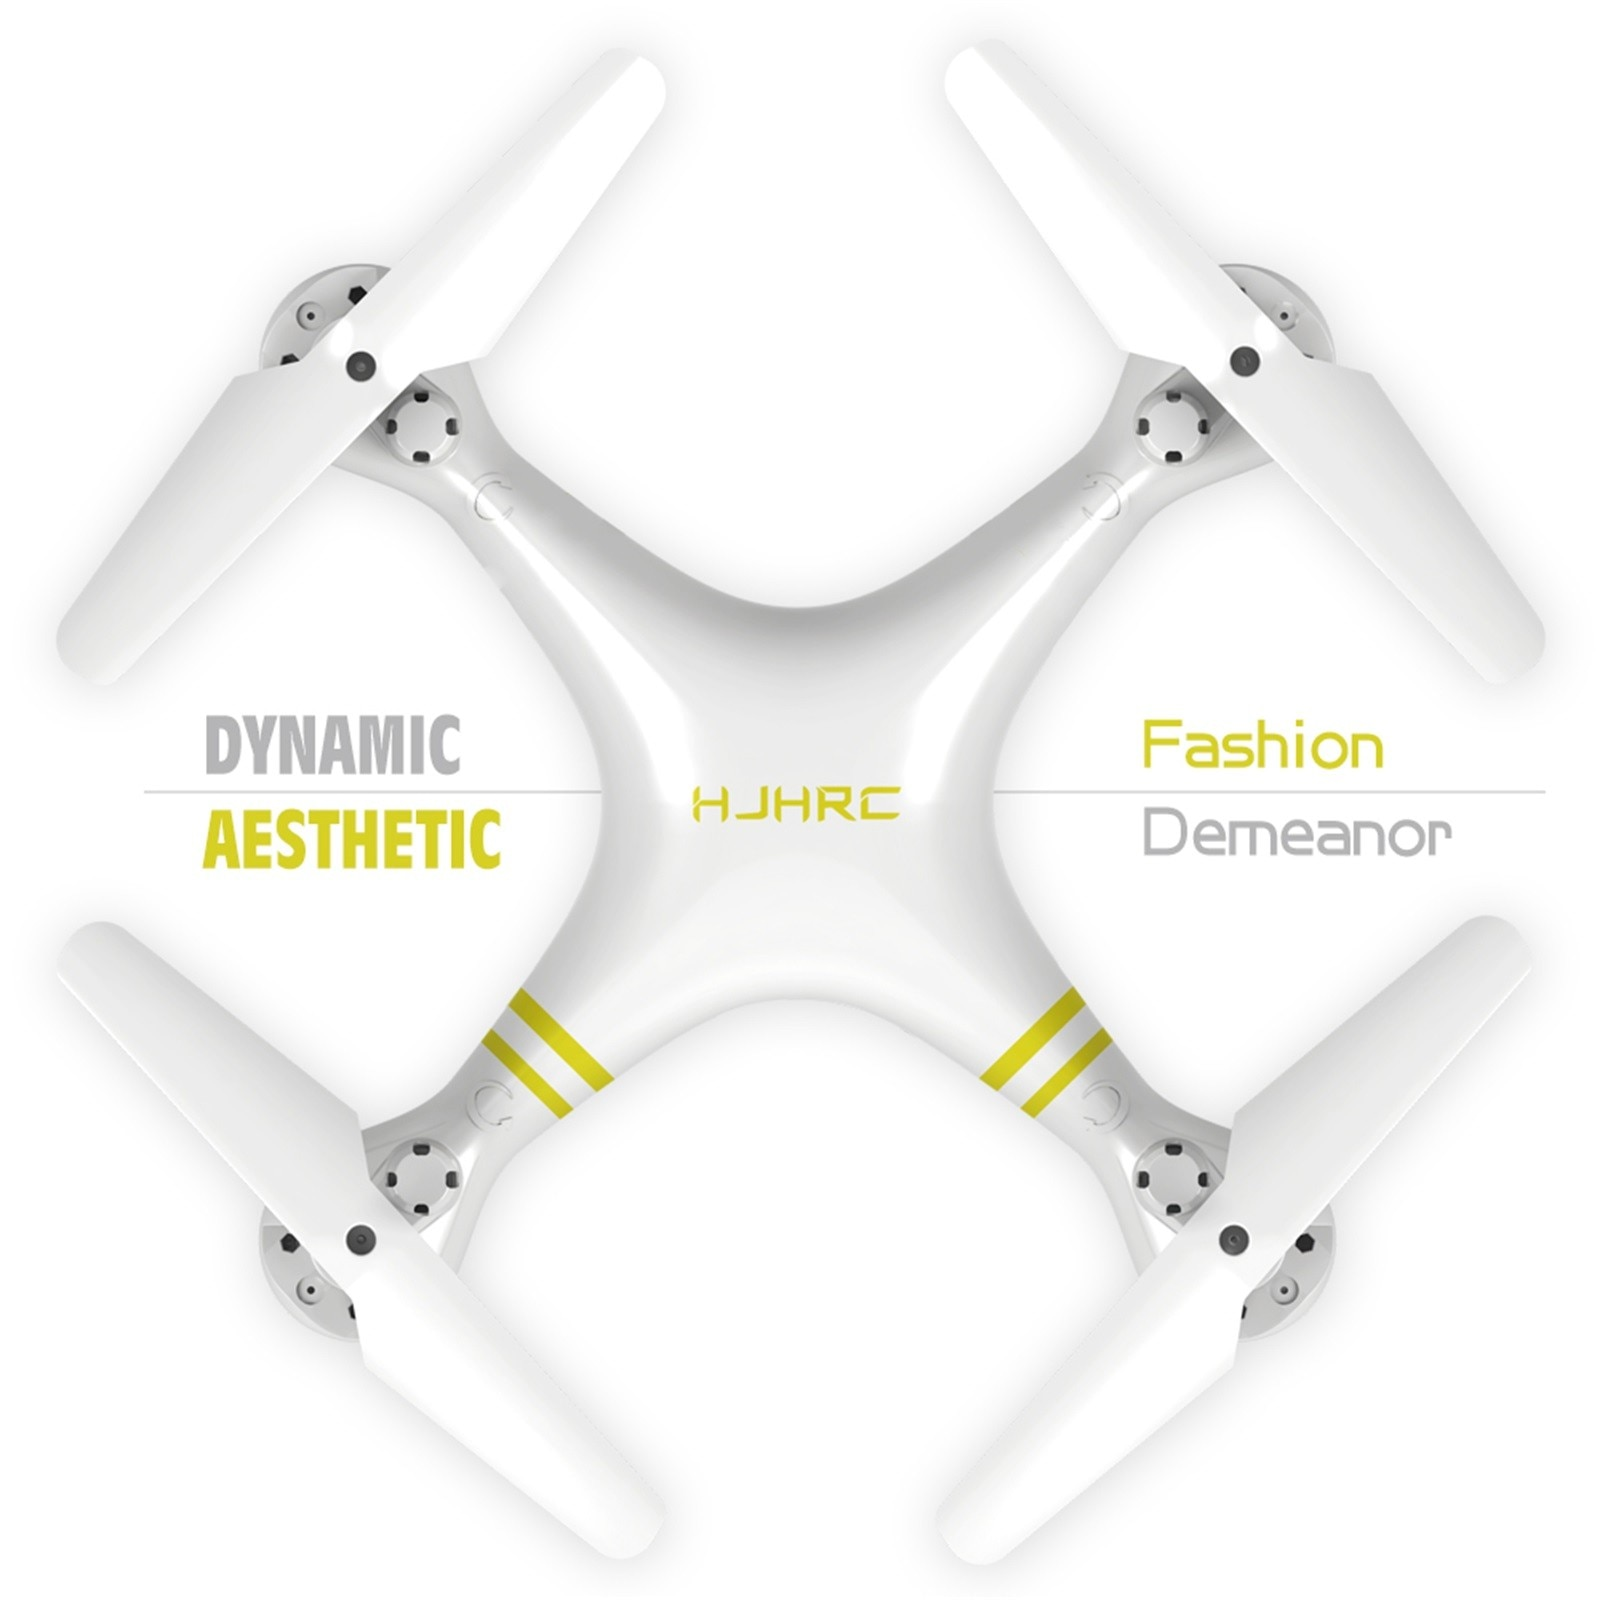 H0a834bcb70944b848c27e9dbc786815bp - Hjhrc Four-axis Aerial Photography Aircraft Drone With Camera Hd 4k Wifi Fpv Foldable Drone Height Holding Headless Quadcopter